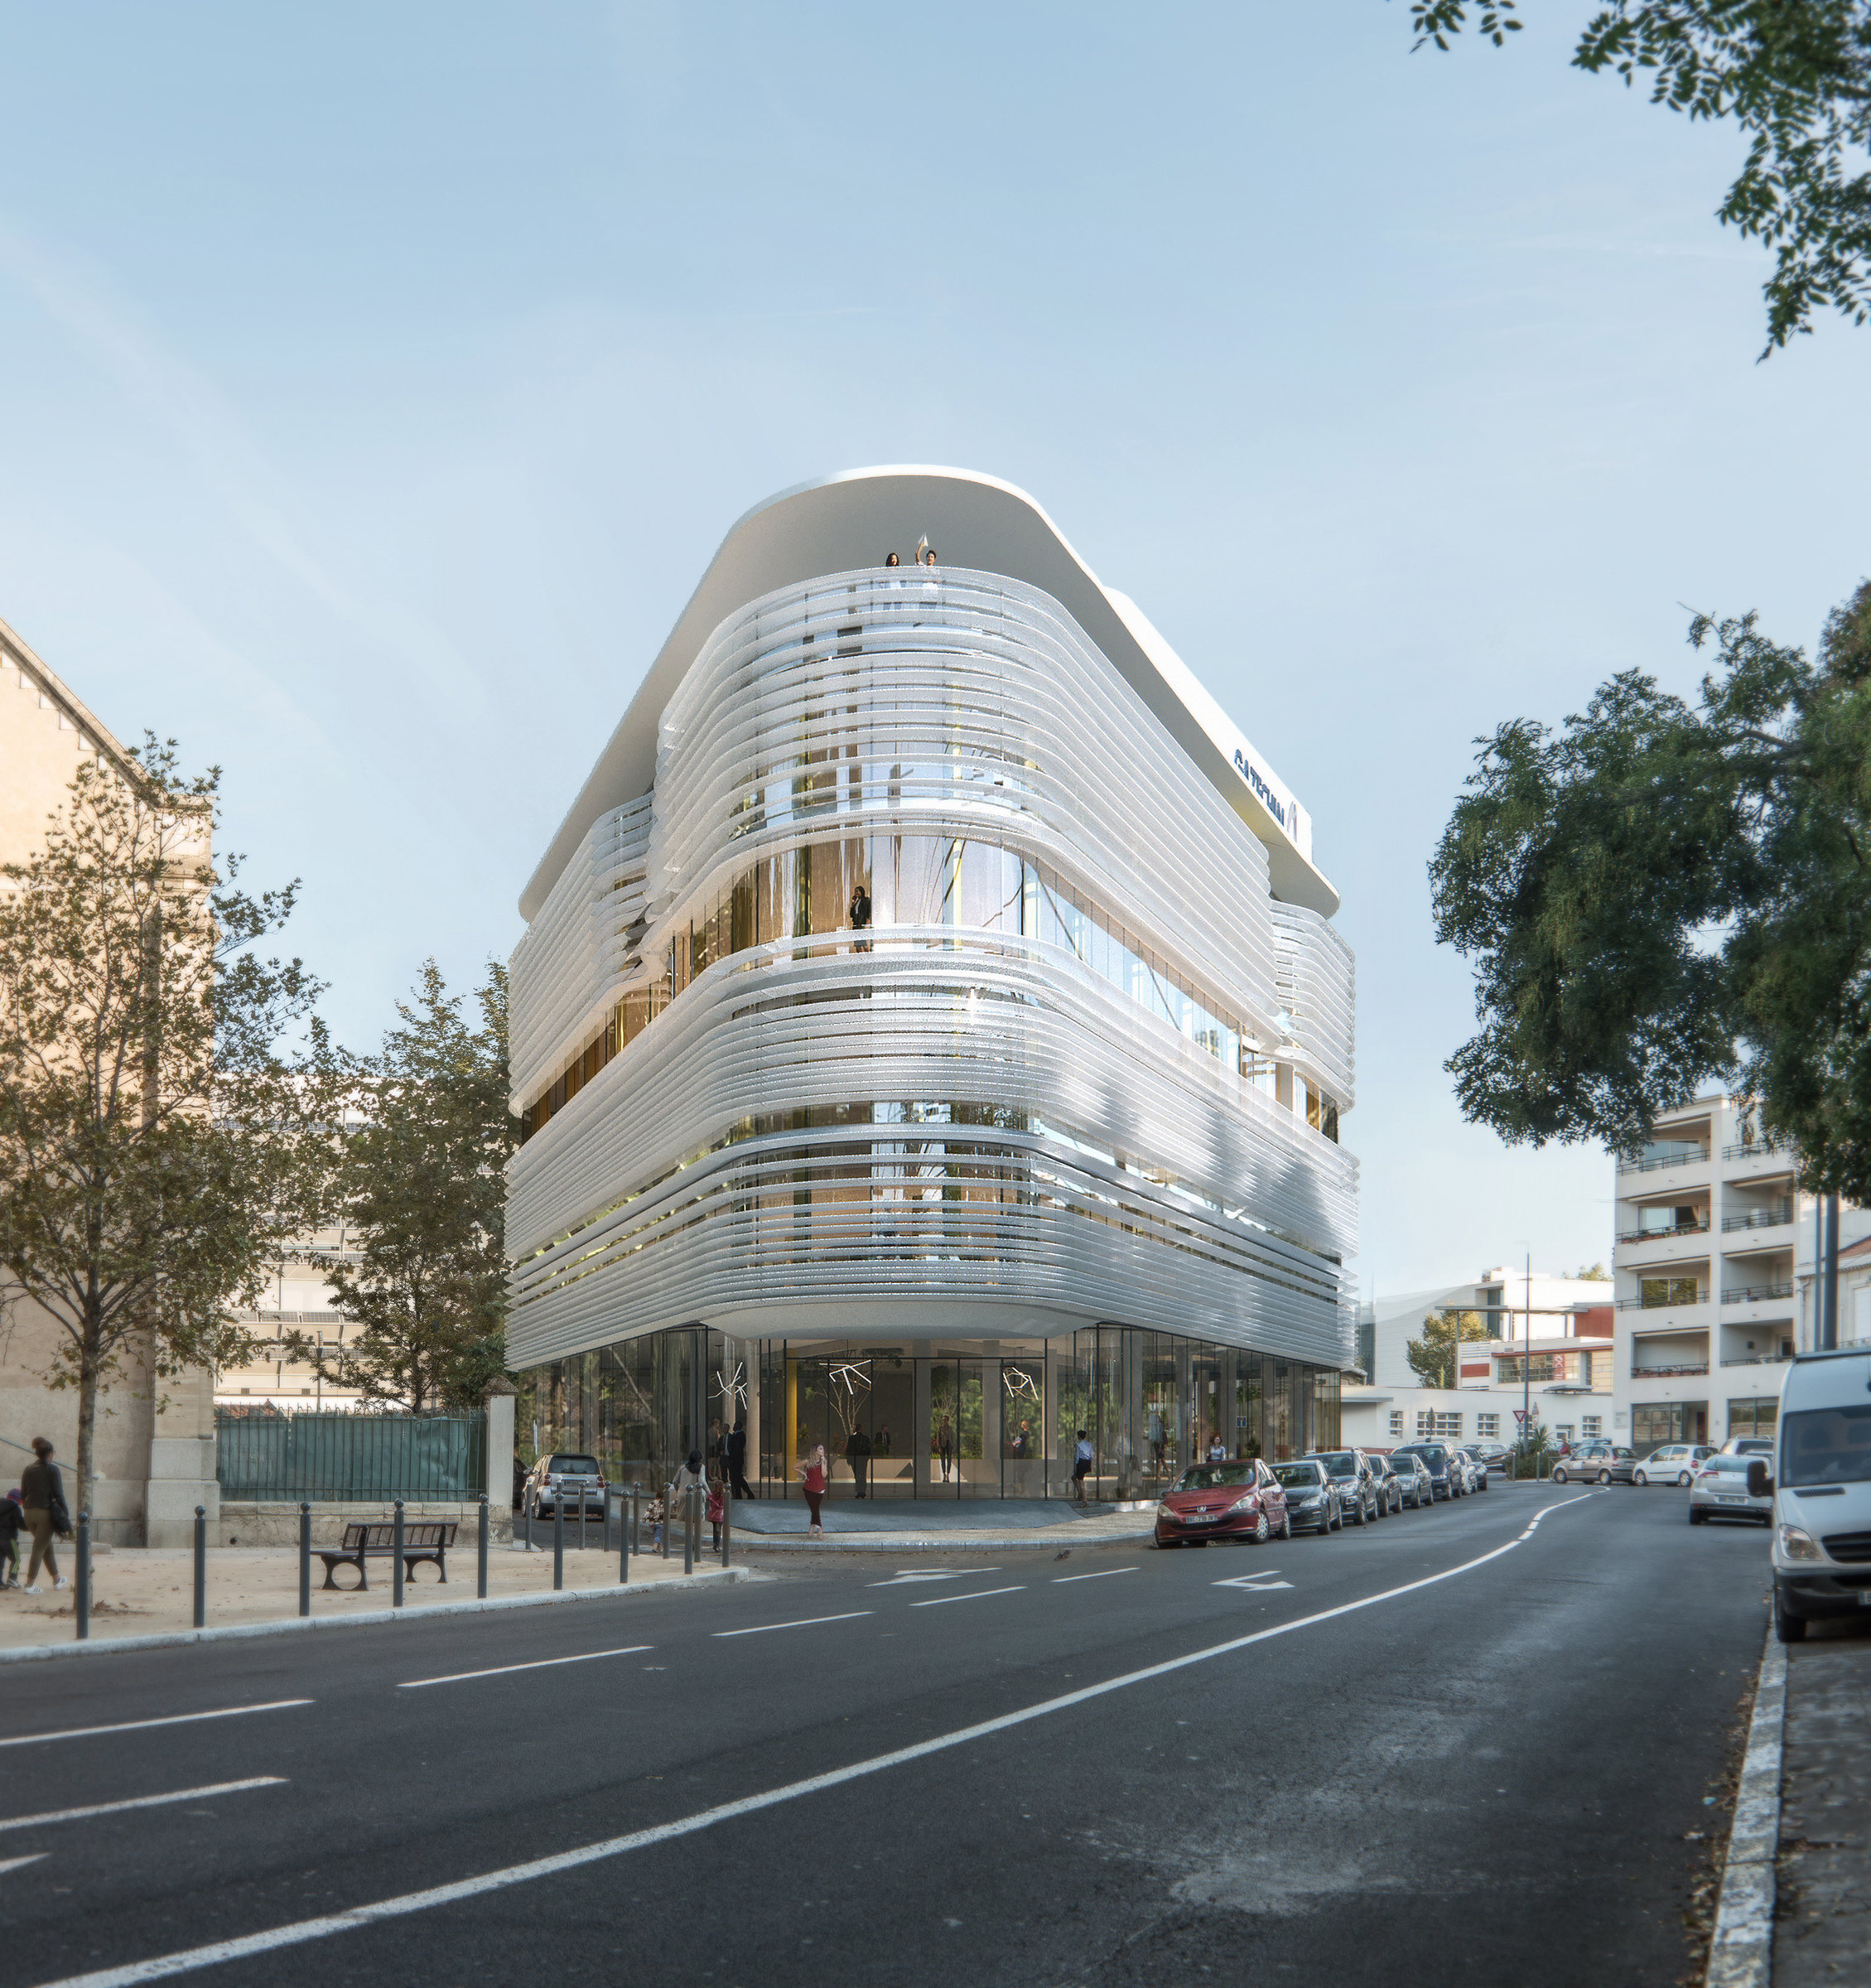 High quality 3D model of a business center inserted into the existing city context of Beziers